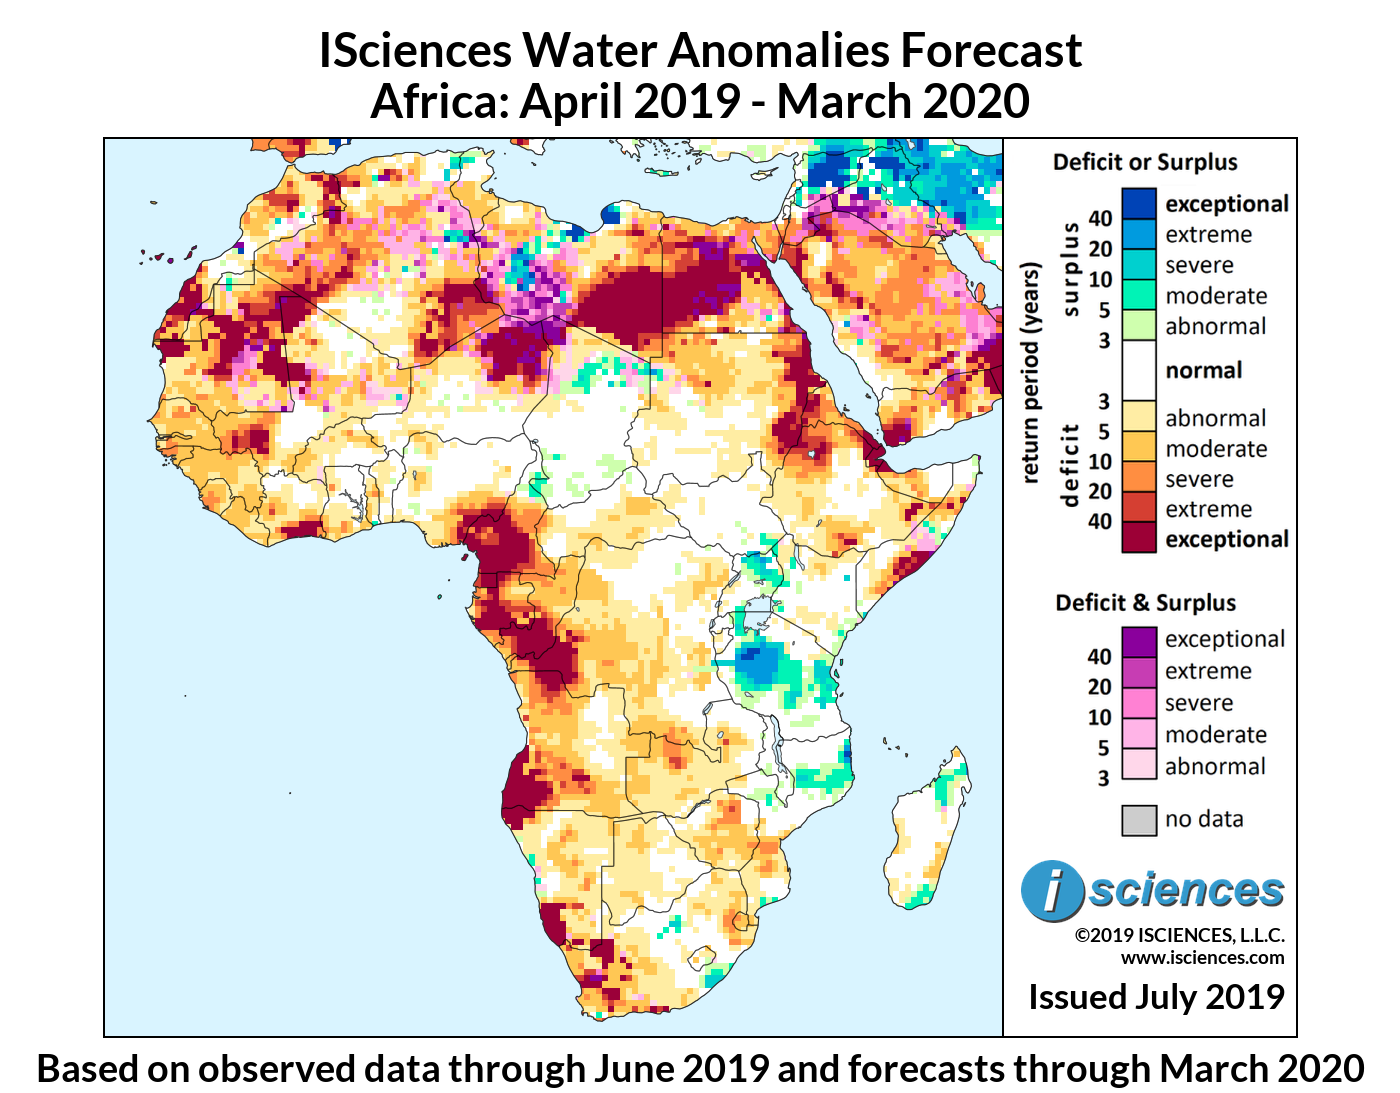 ISciences_Africa_Composite_Adjusted_201904-202003_12mo_panel.png